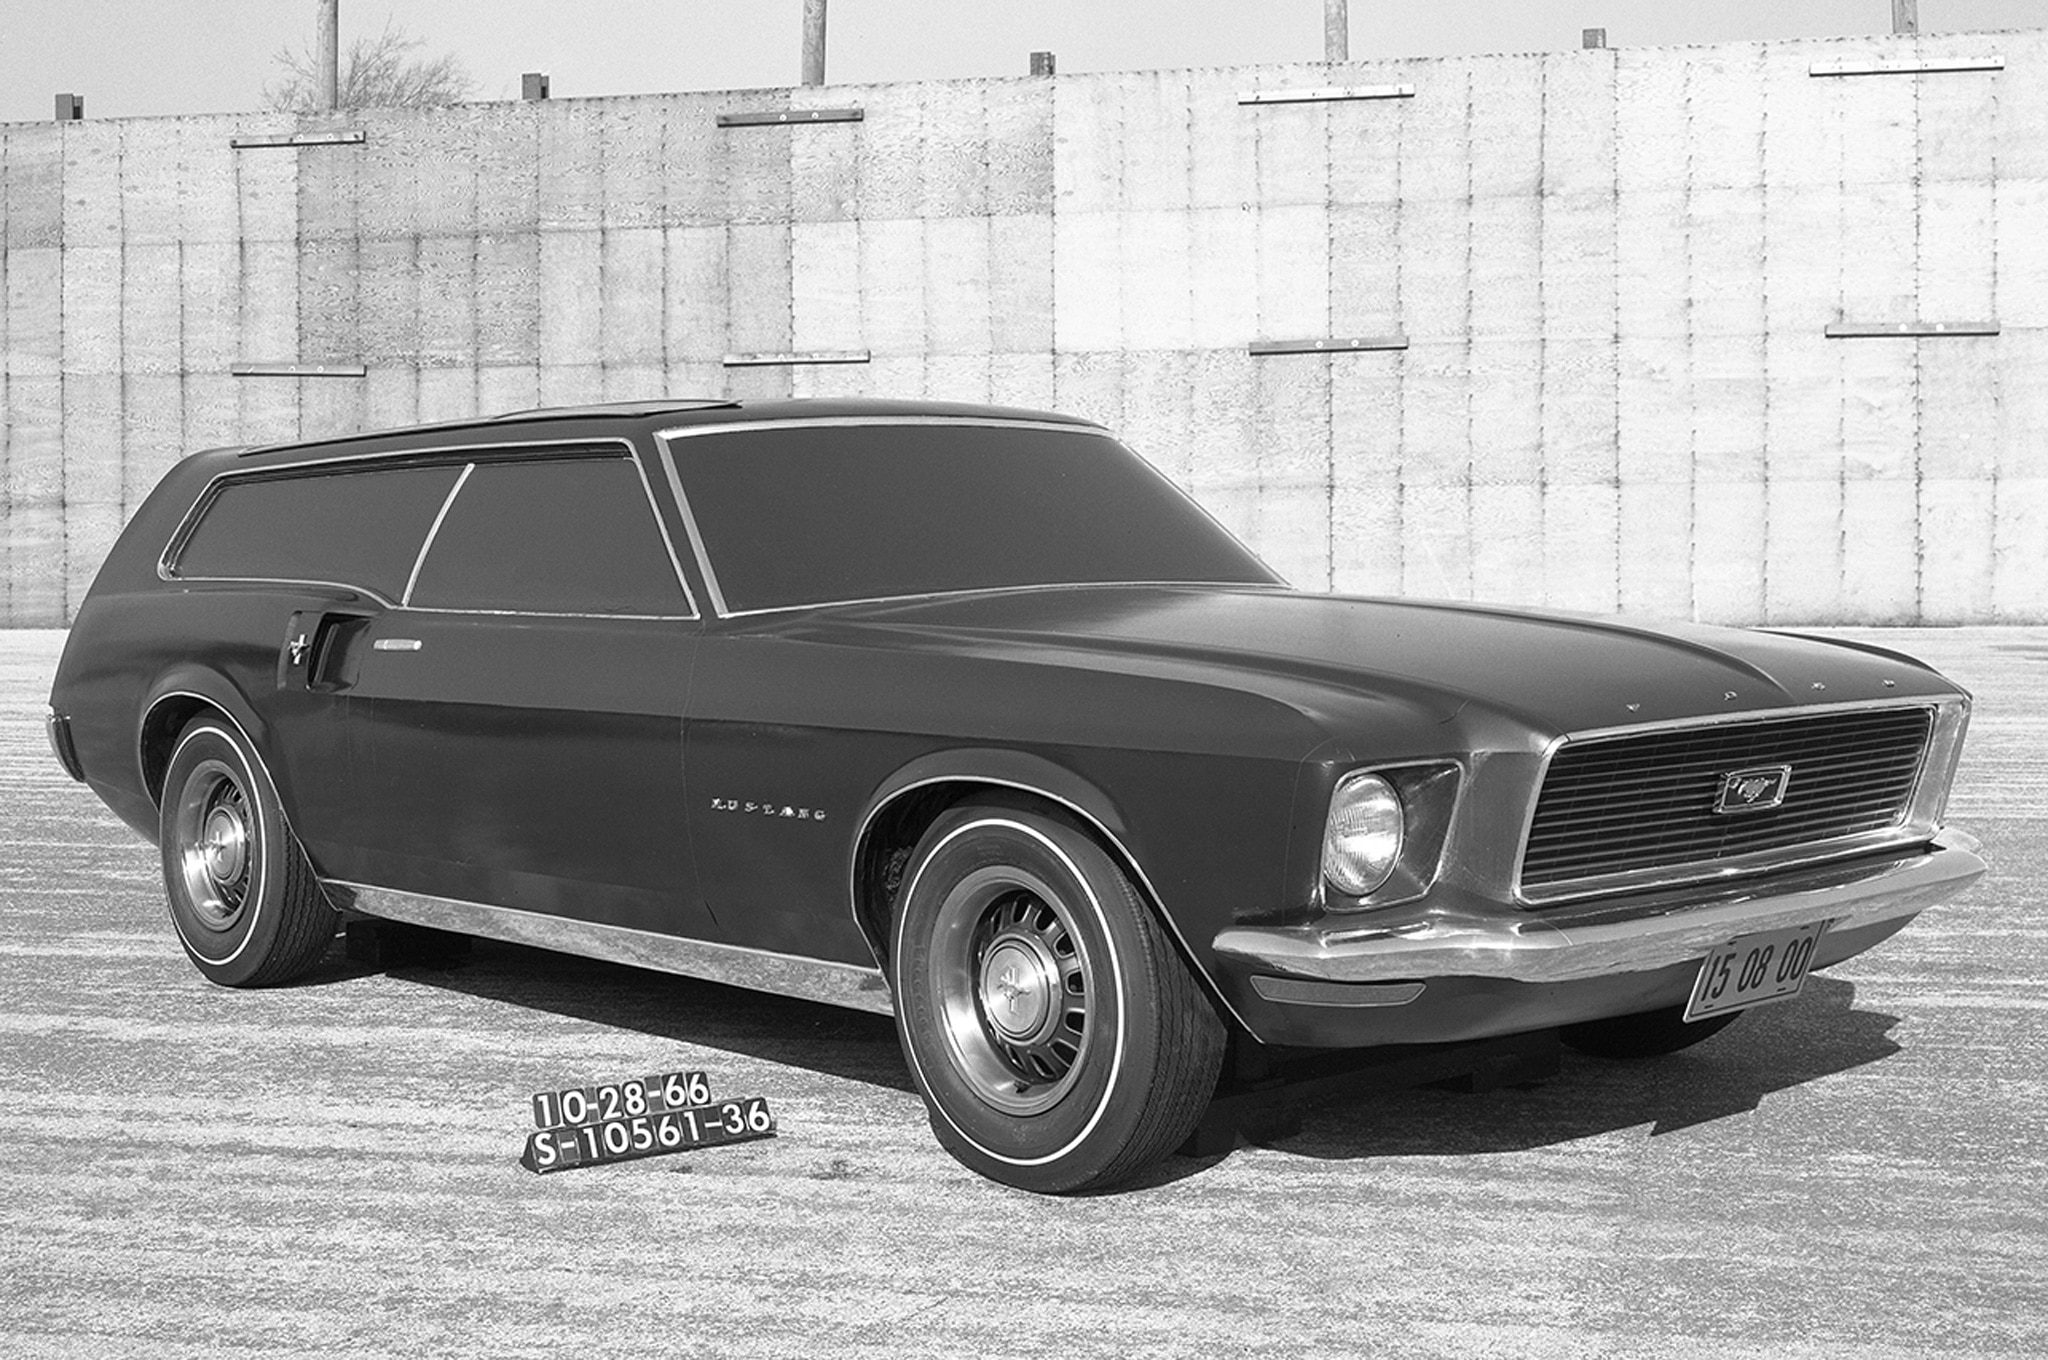 The Ford Mustang Designs That Never Made It 1969 Hatchback Show More